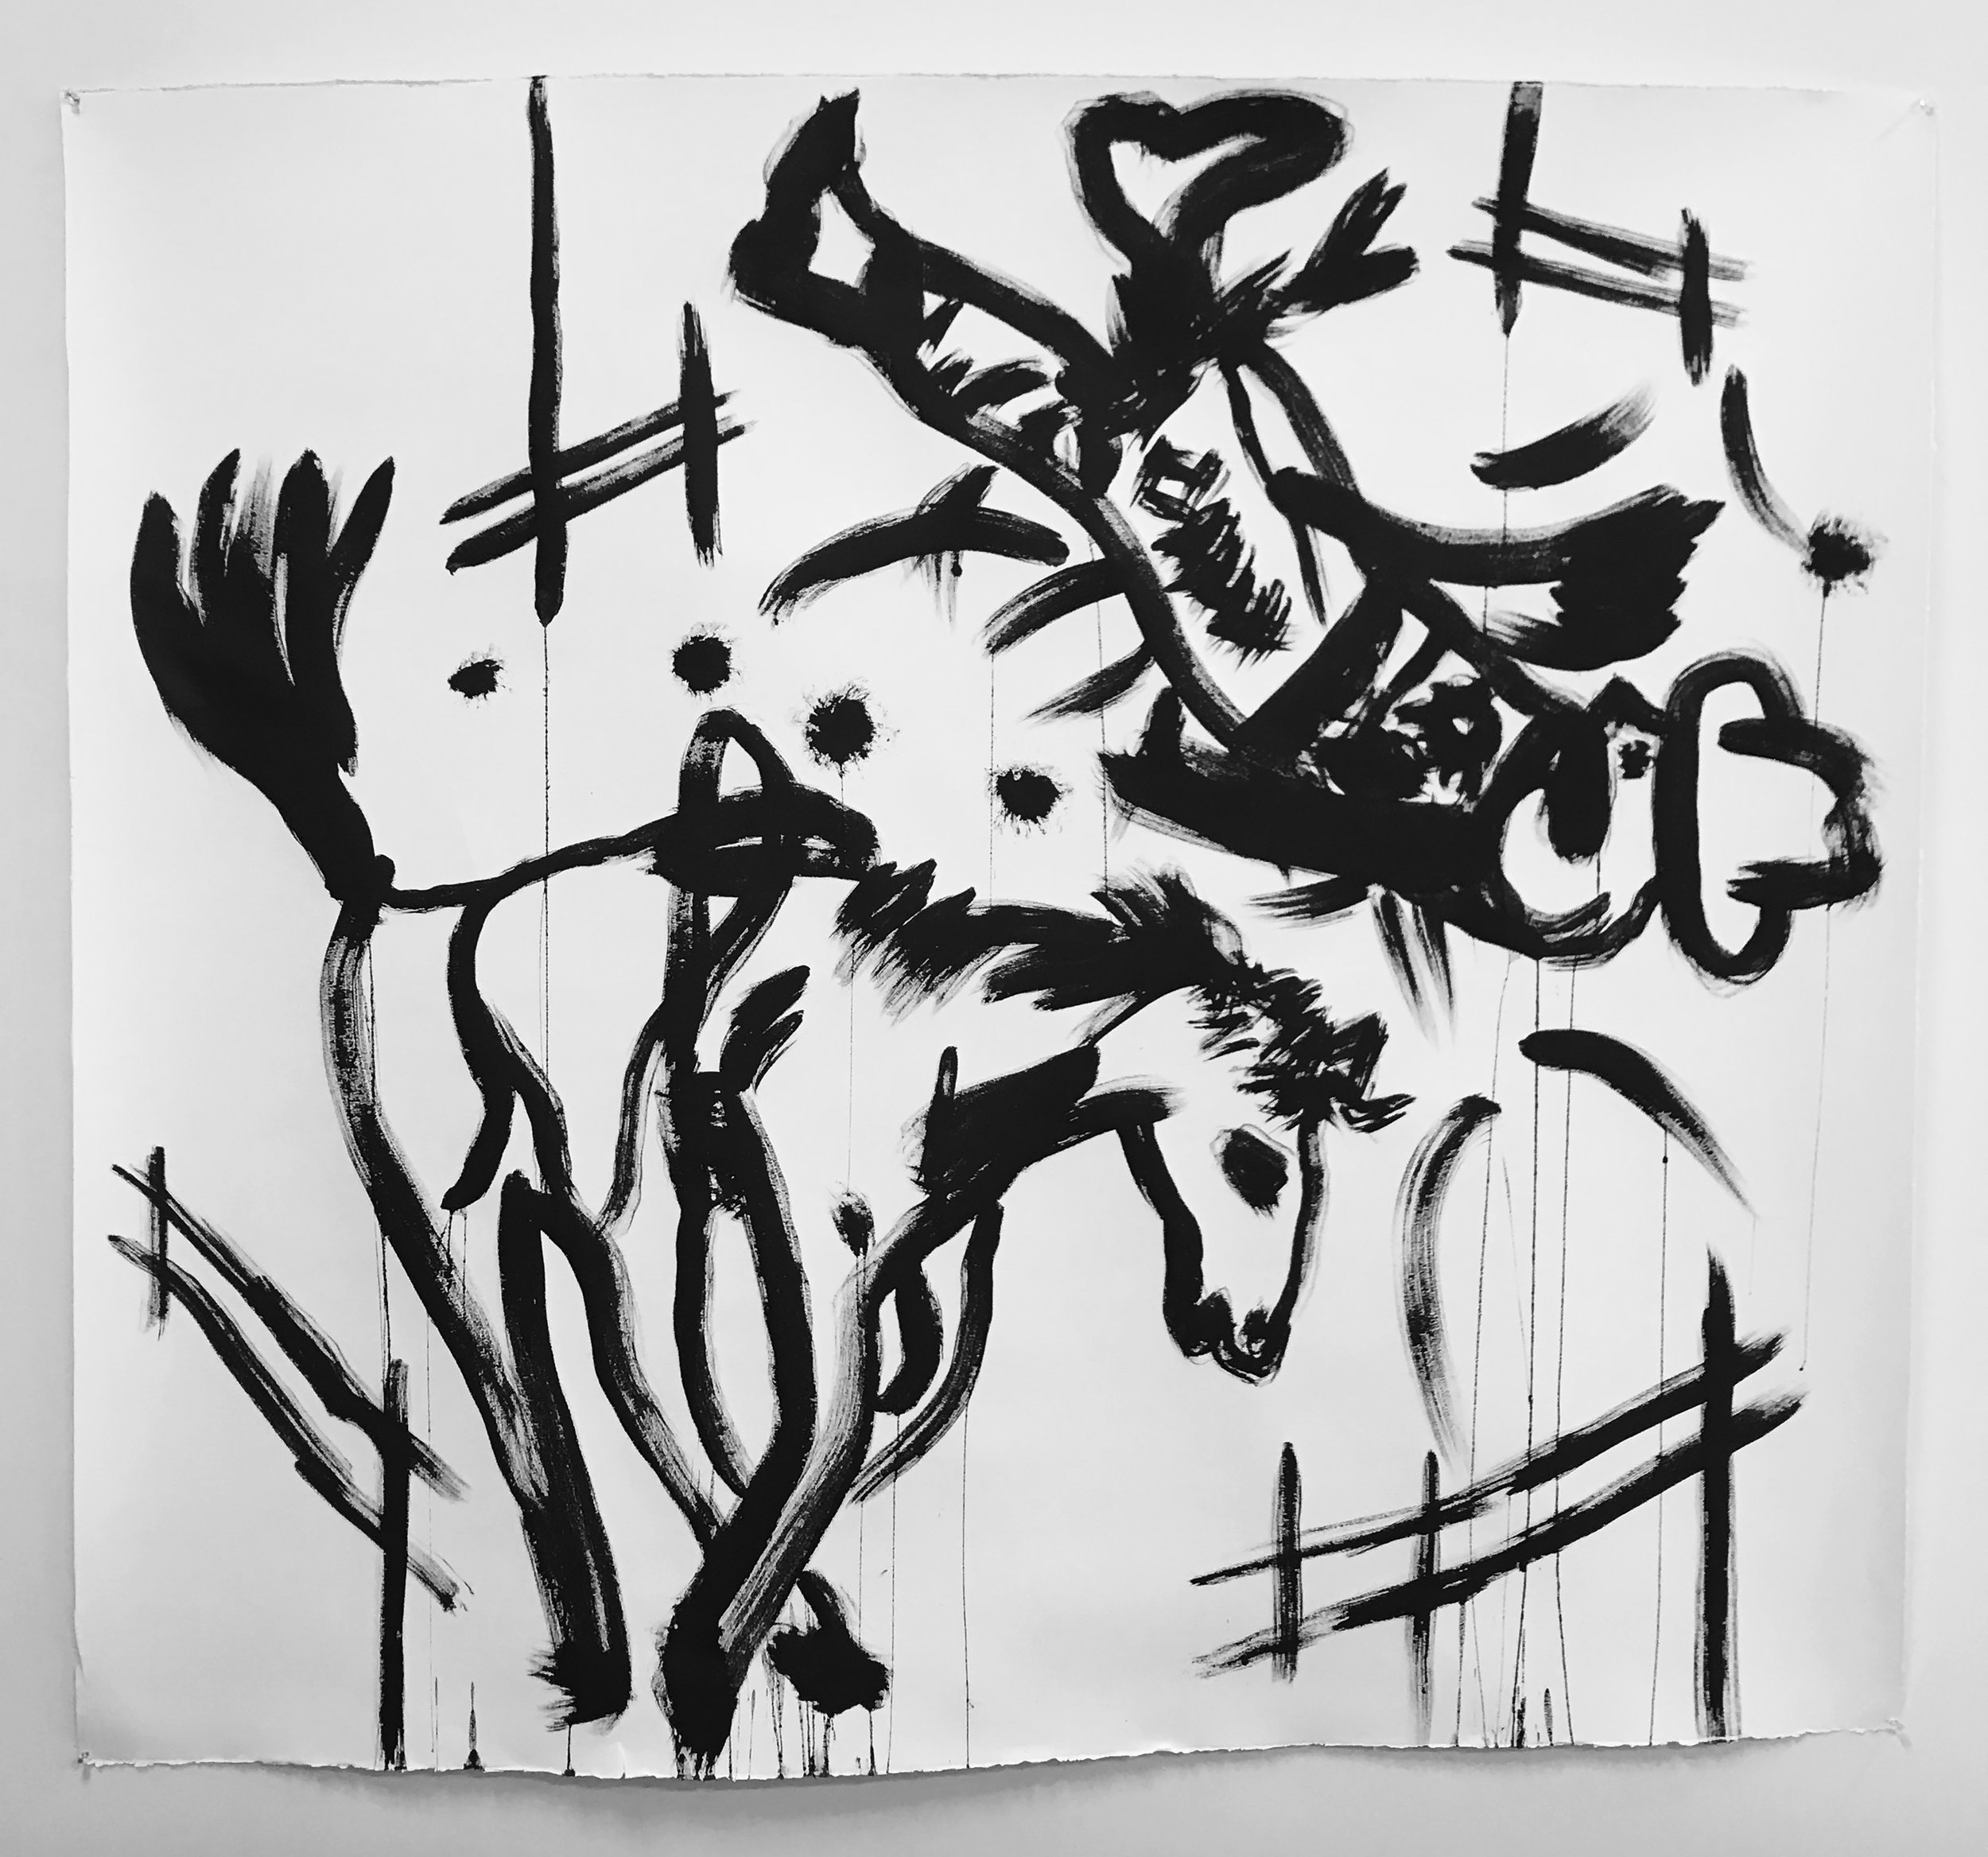 Bucked, 2018, sumi ink on paper, 51 x 55 inches